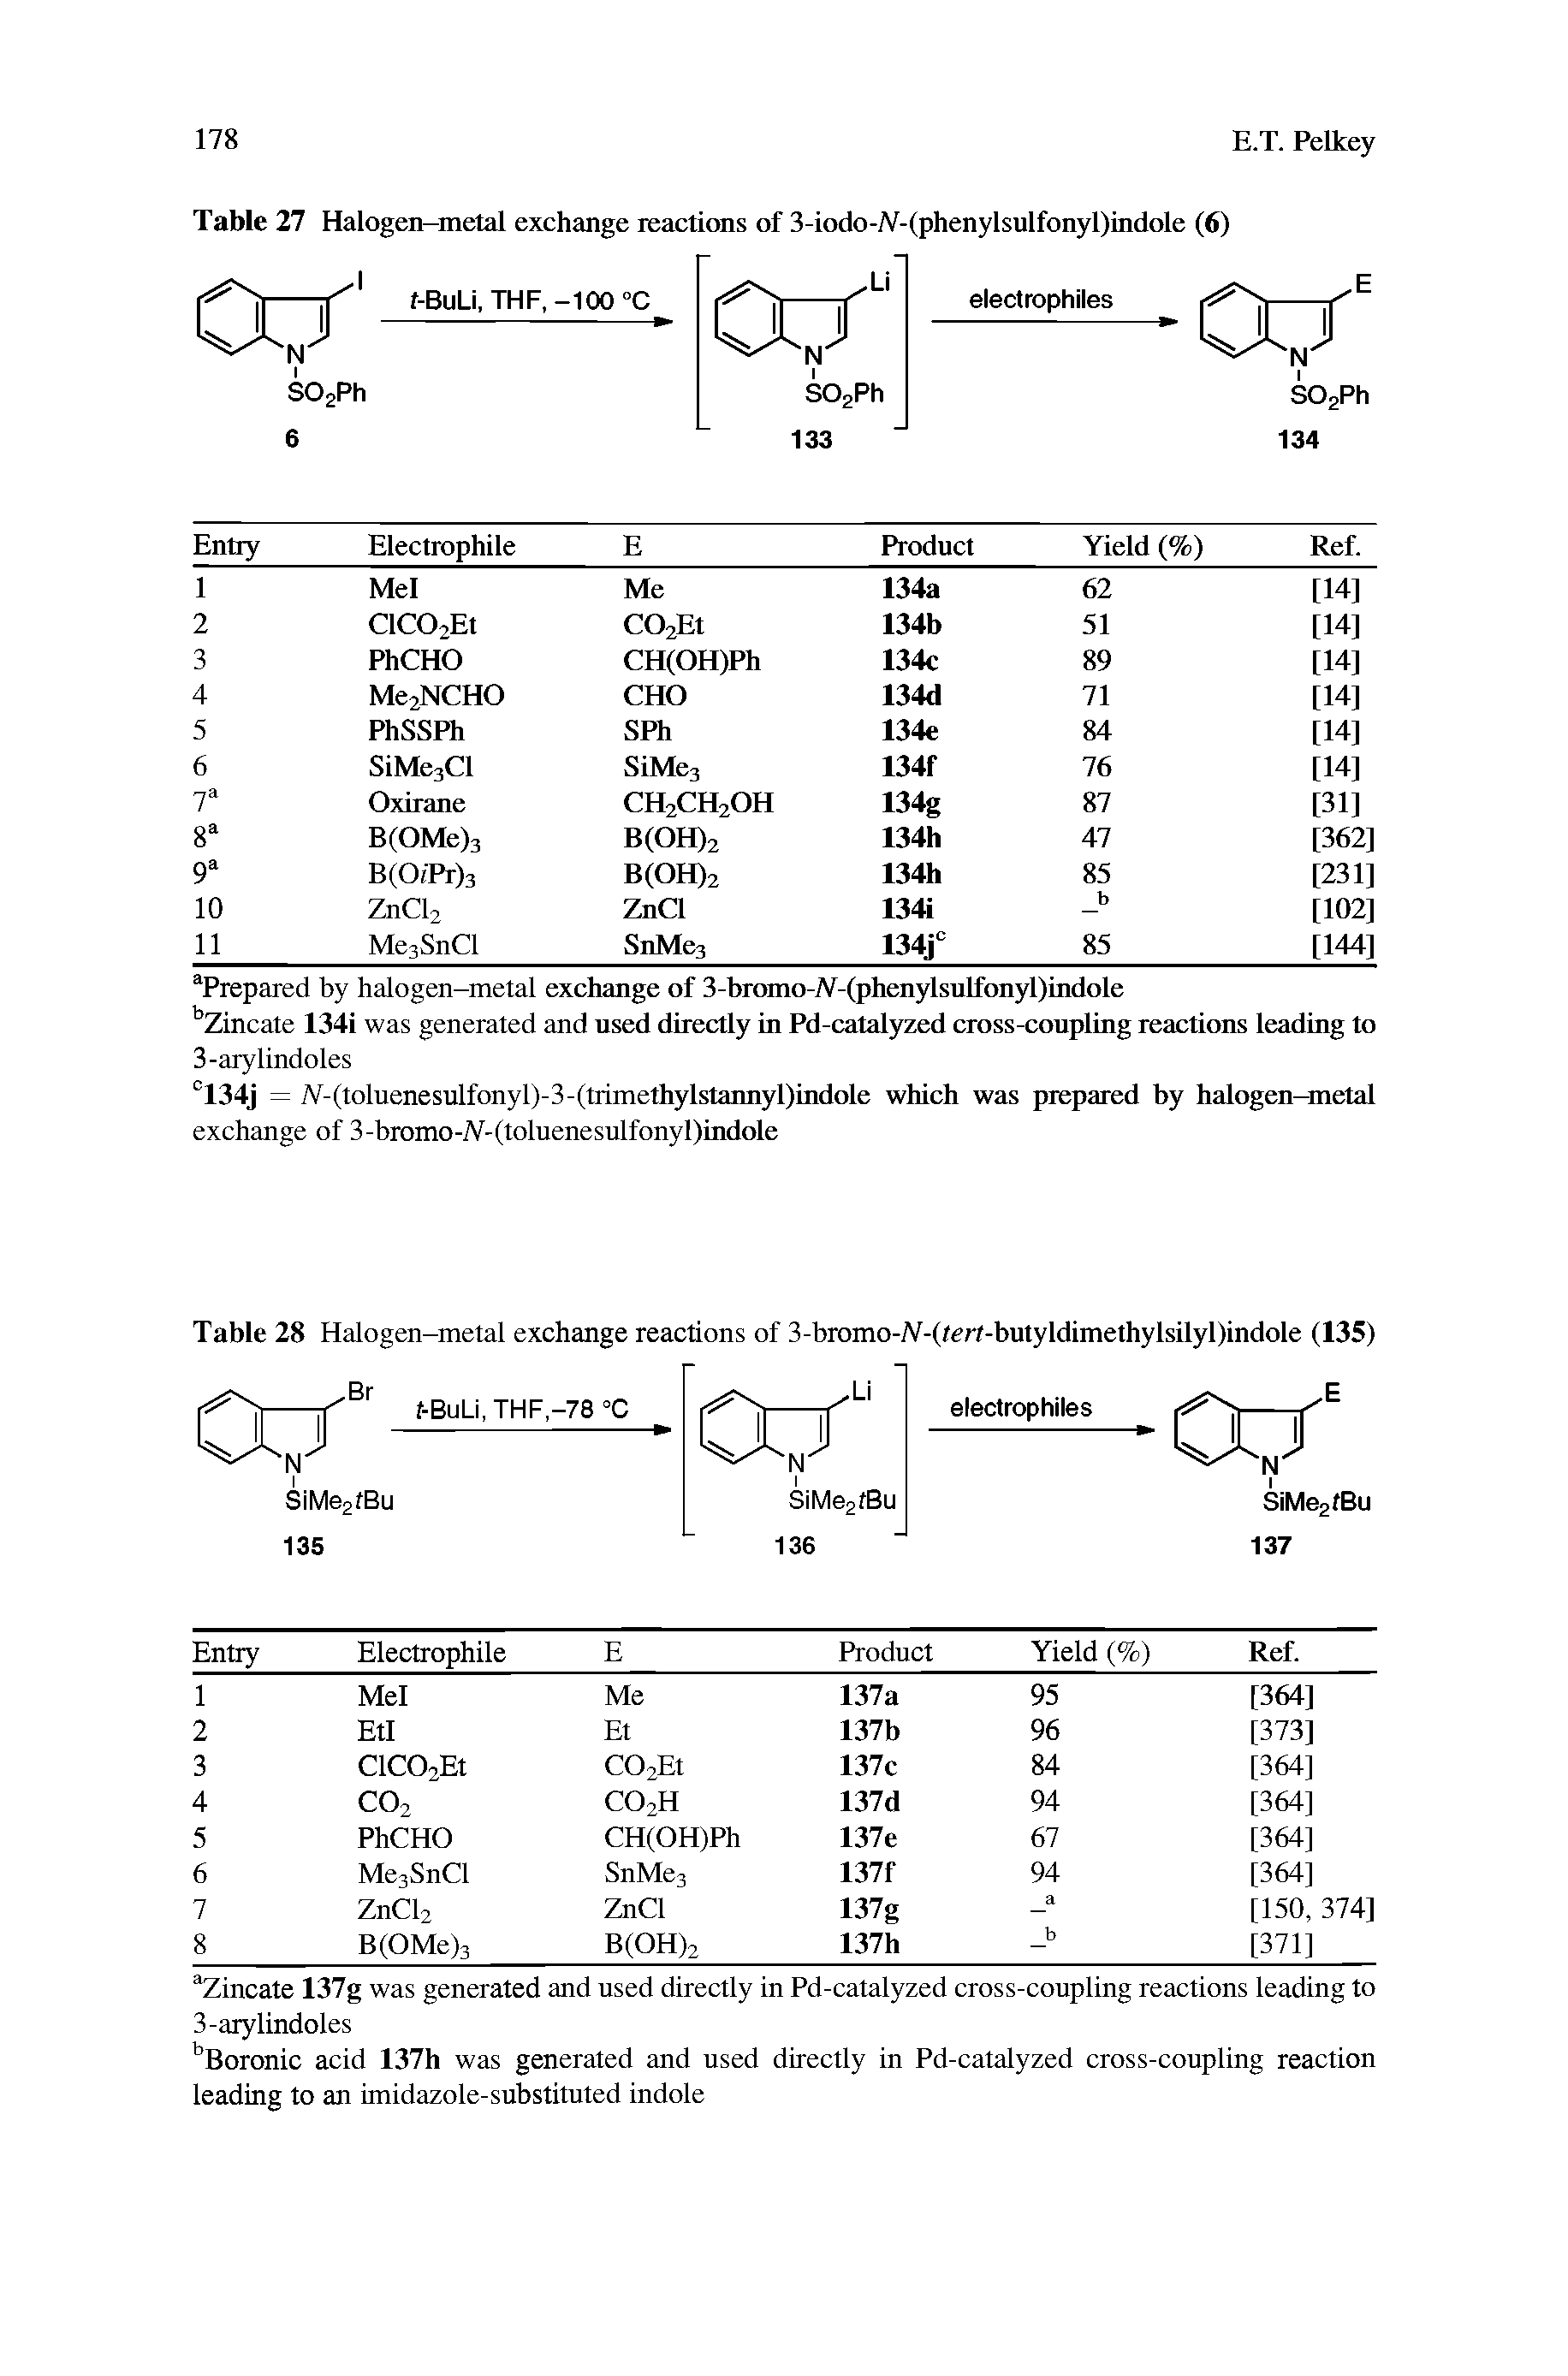 "Table 27 <a href=""/info/exchange_reactions_halogen_metal"">Halogen-metal exchange reactions</a> of 3-iodo-N-(phenylsulfonyl)indole (6)"